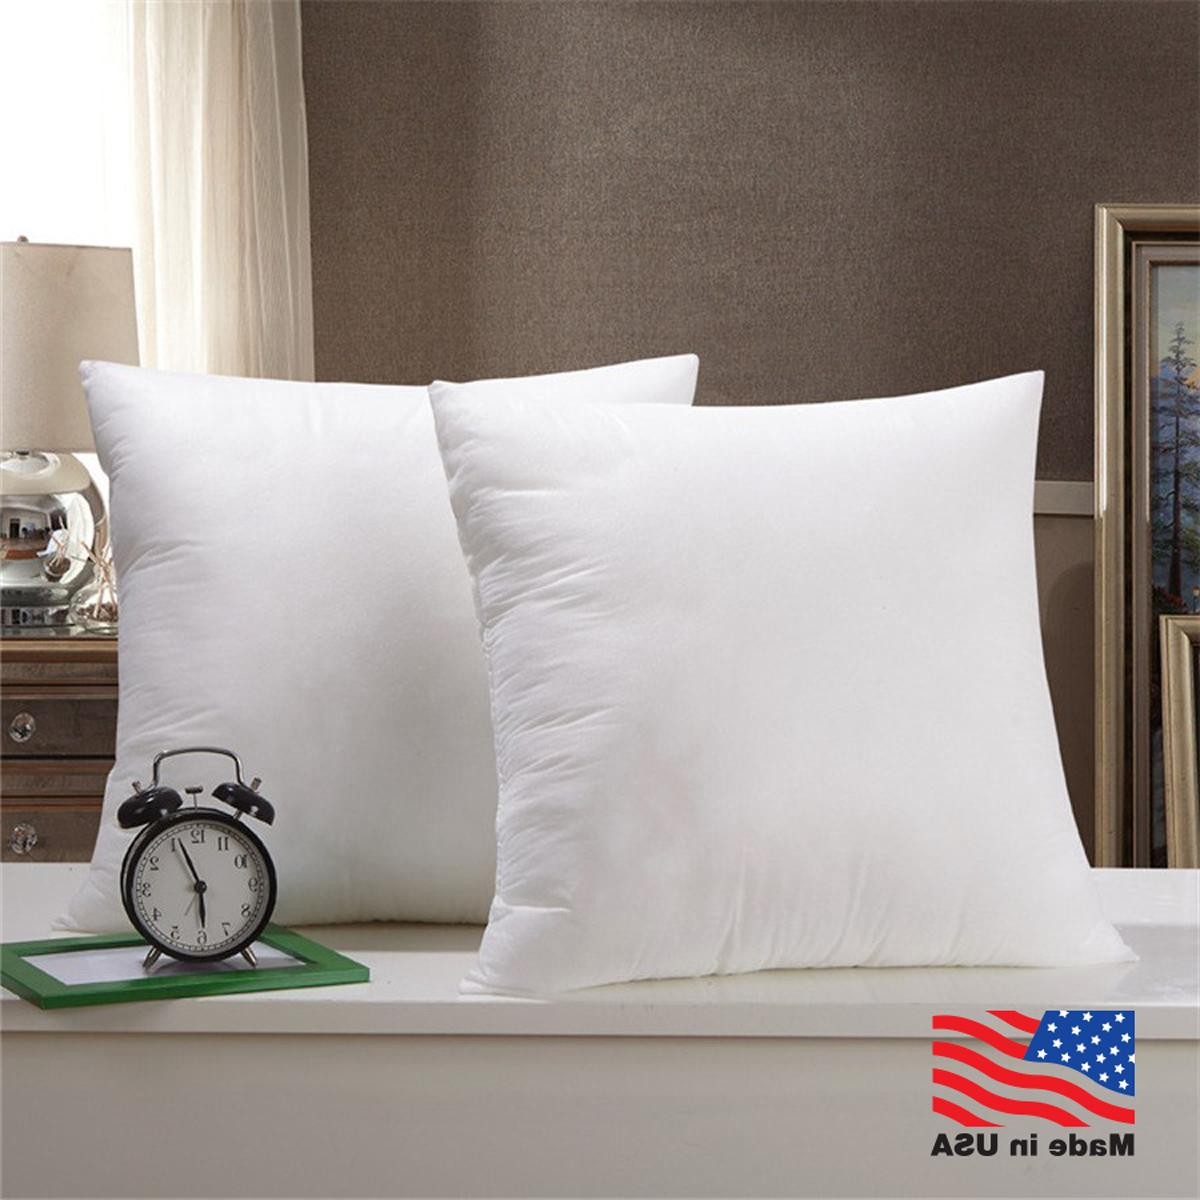 Euro Pillow Pillow USA Cotton of